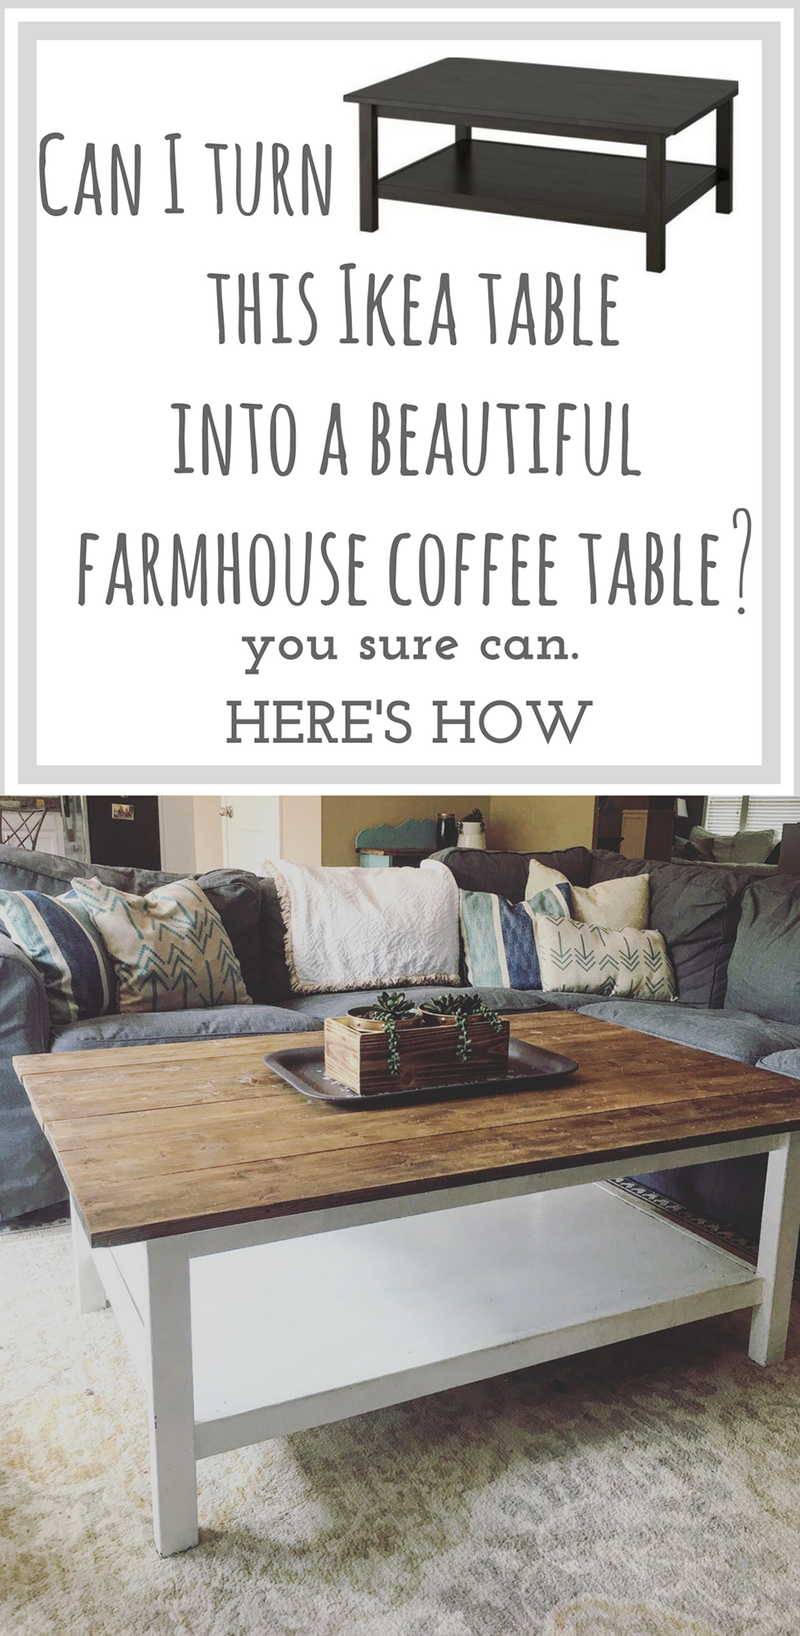 http://thecottagemarket.com/wp-content/uploads/2019/06/IKEA-Hack-Coffee-Table-5.png